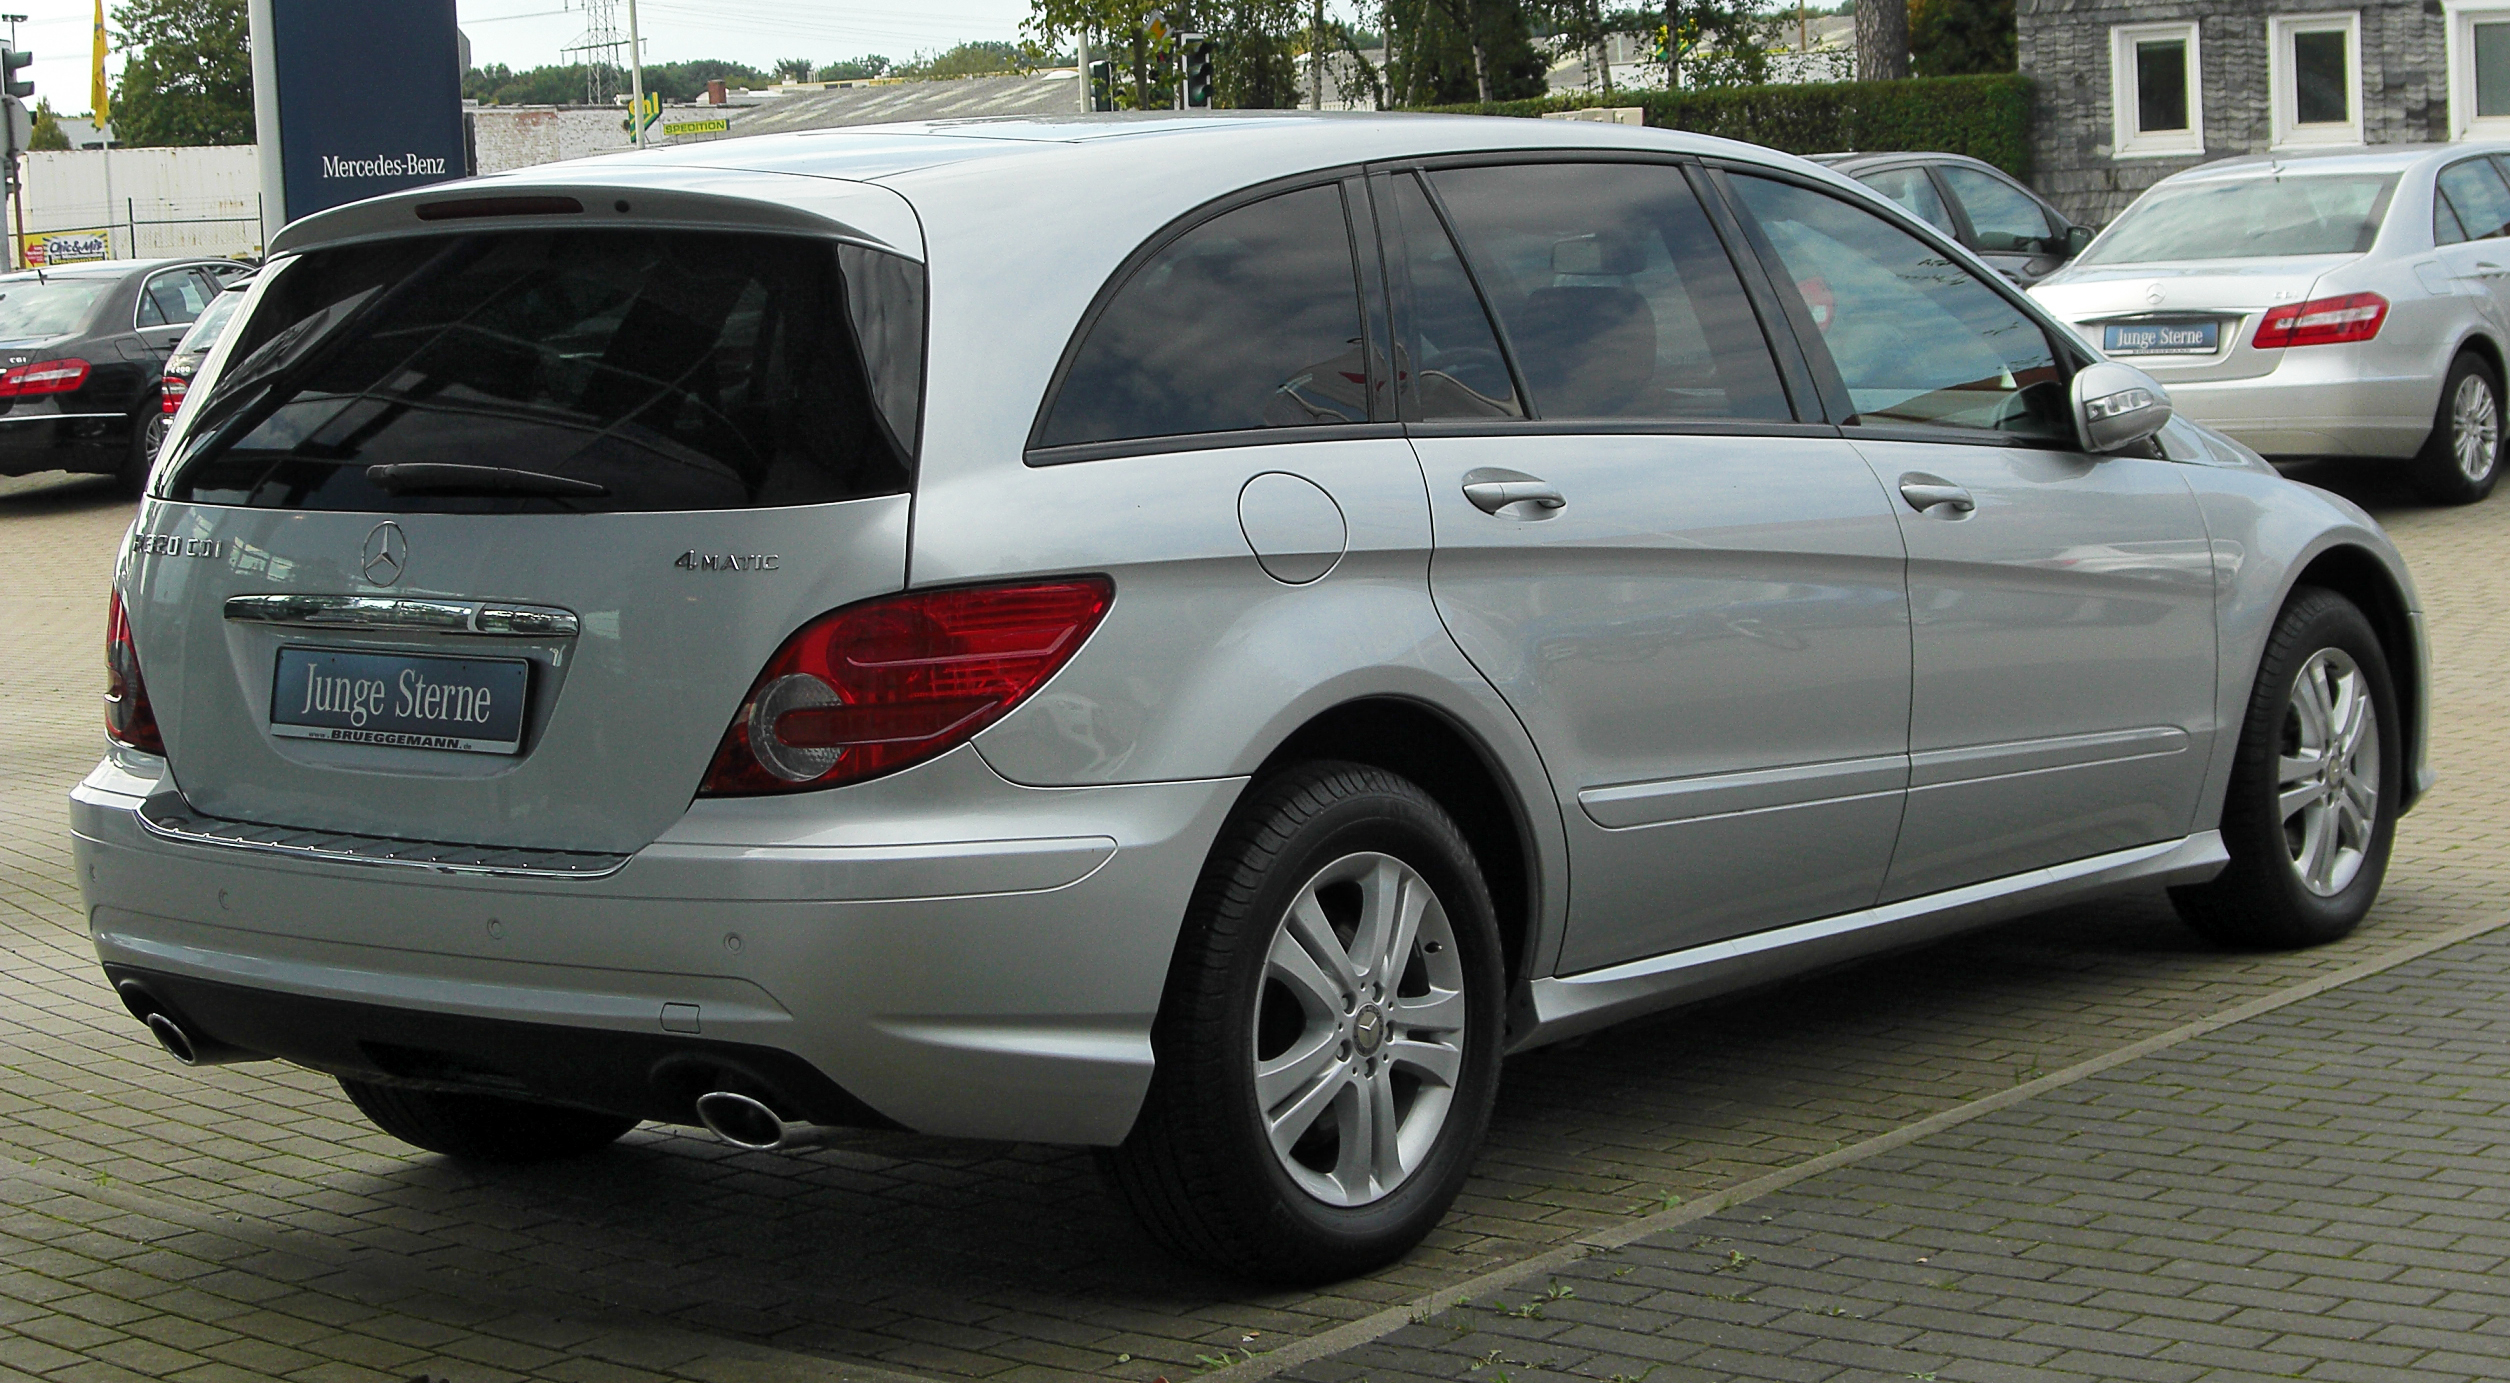 File:Mercedes R 320 CDI 4MATIC L (V251) I. Facelift rear 20100918 ...